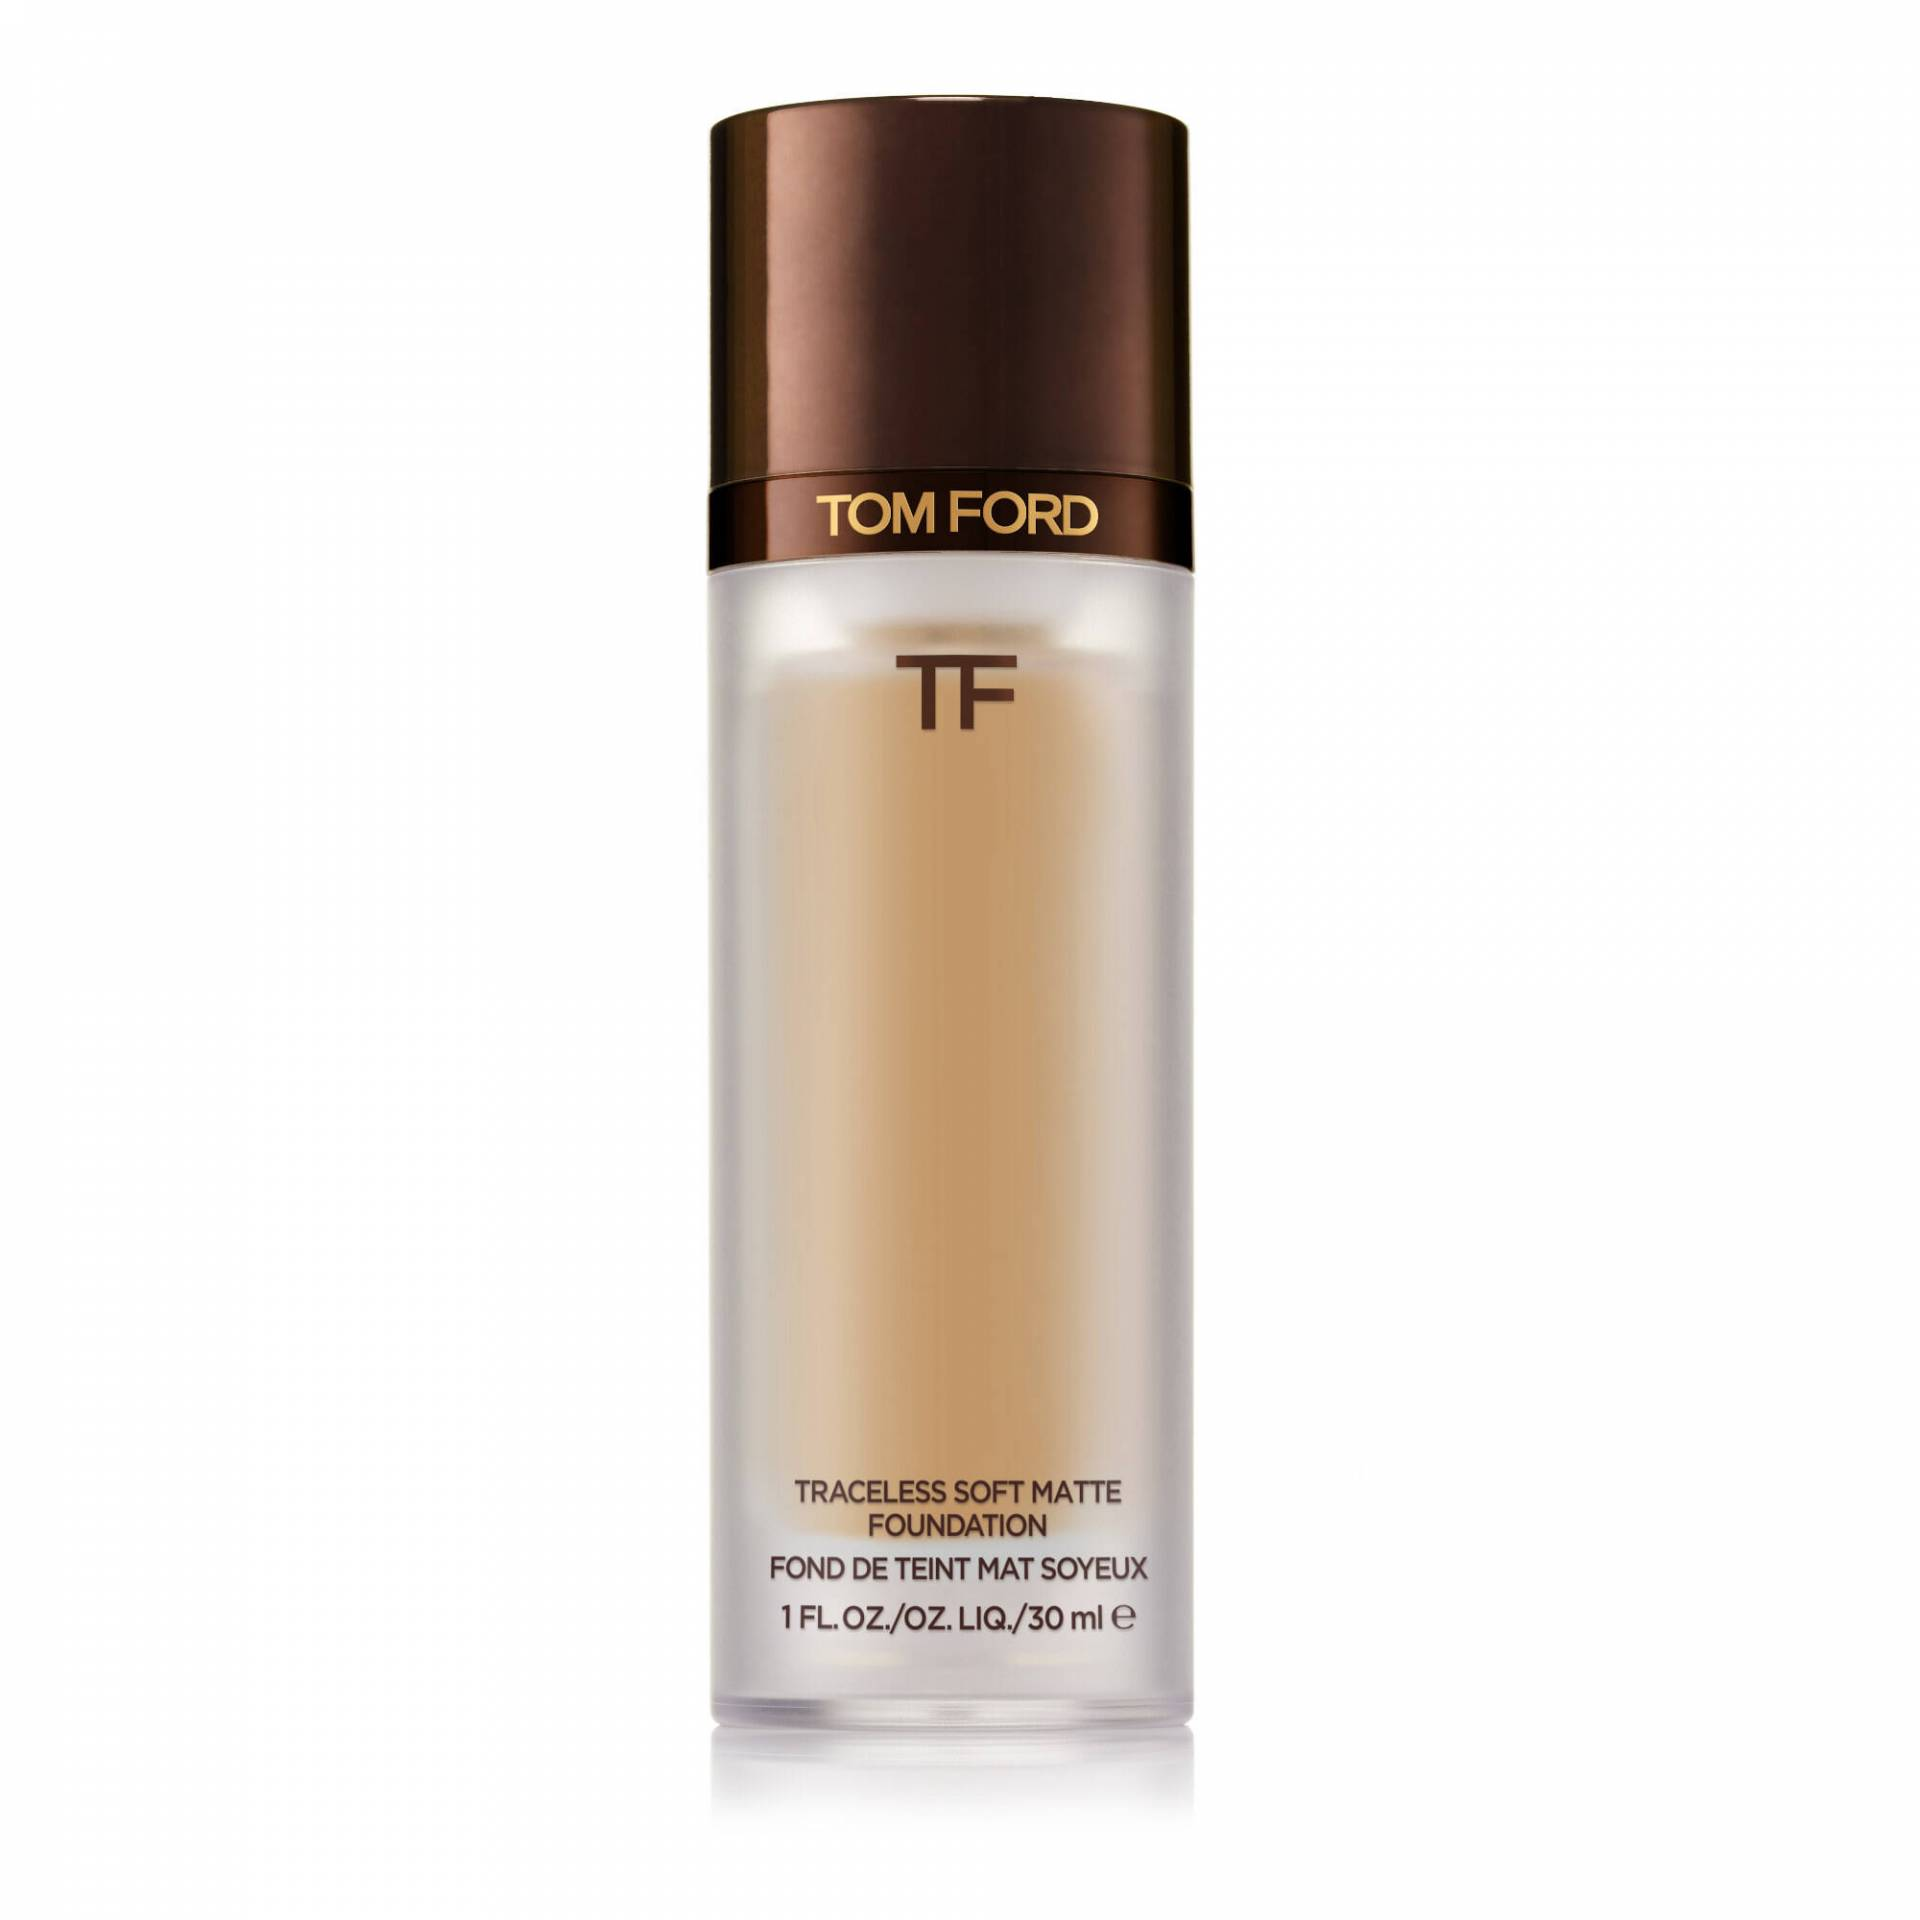 TOM FORD Traceless Soft Matte Foundation (7.2 Sepia | 30 ml) Make Up, Gesicht, Foundation Cosmetics, Face von TOM FORD